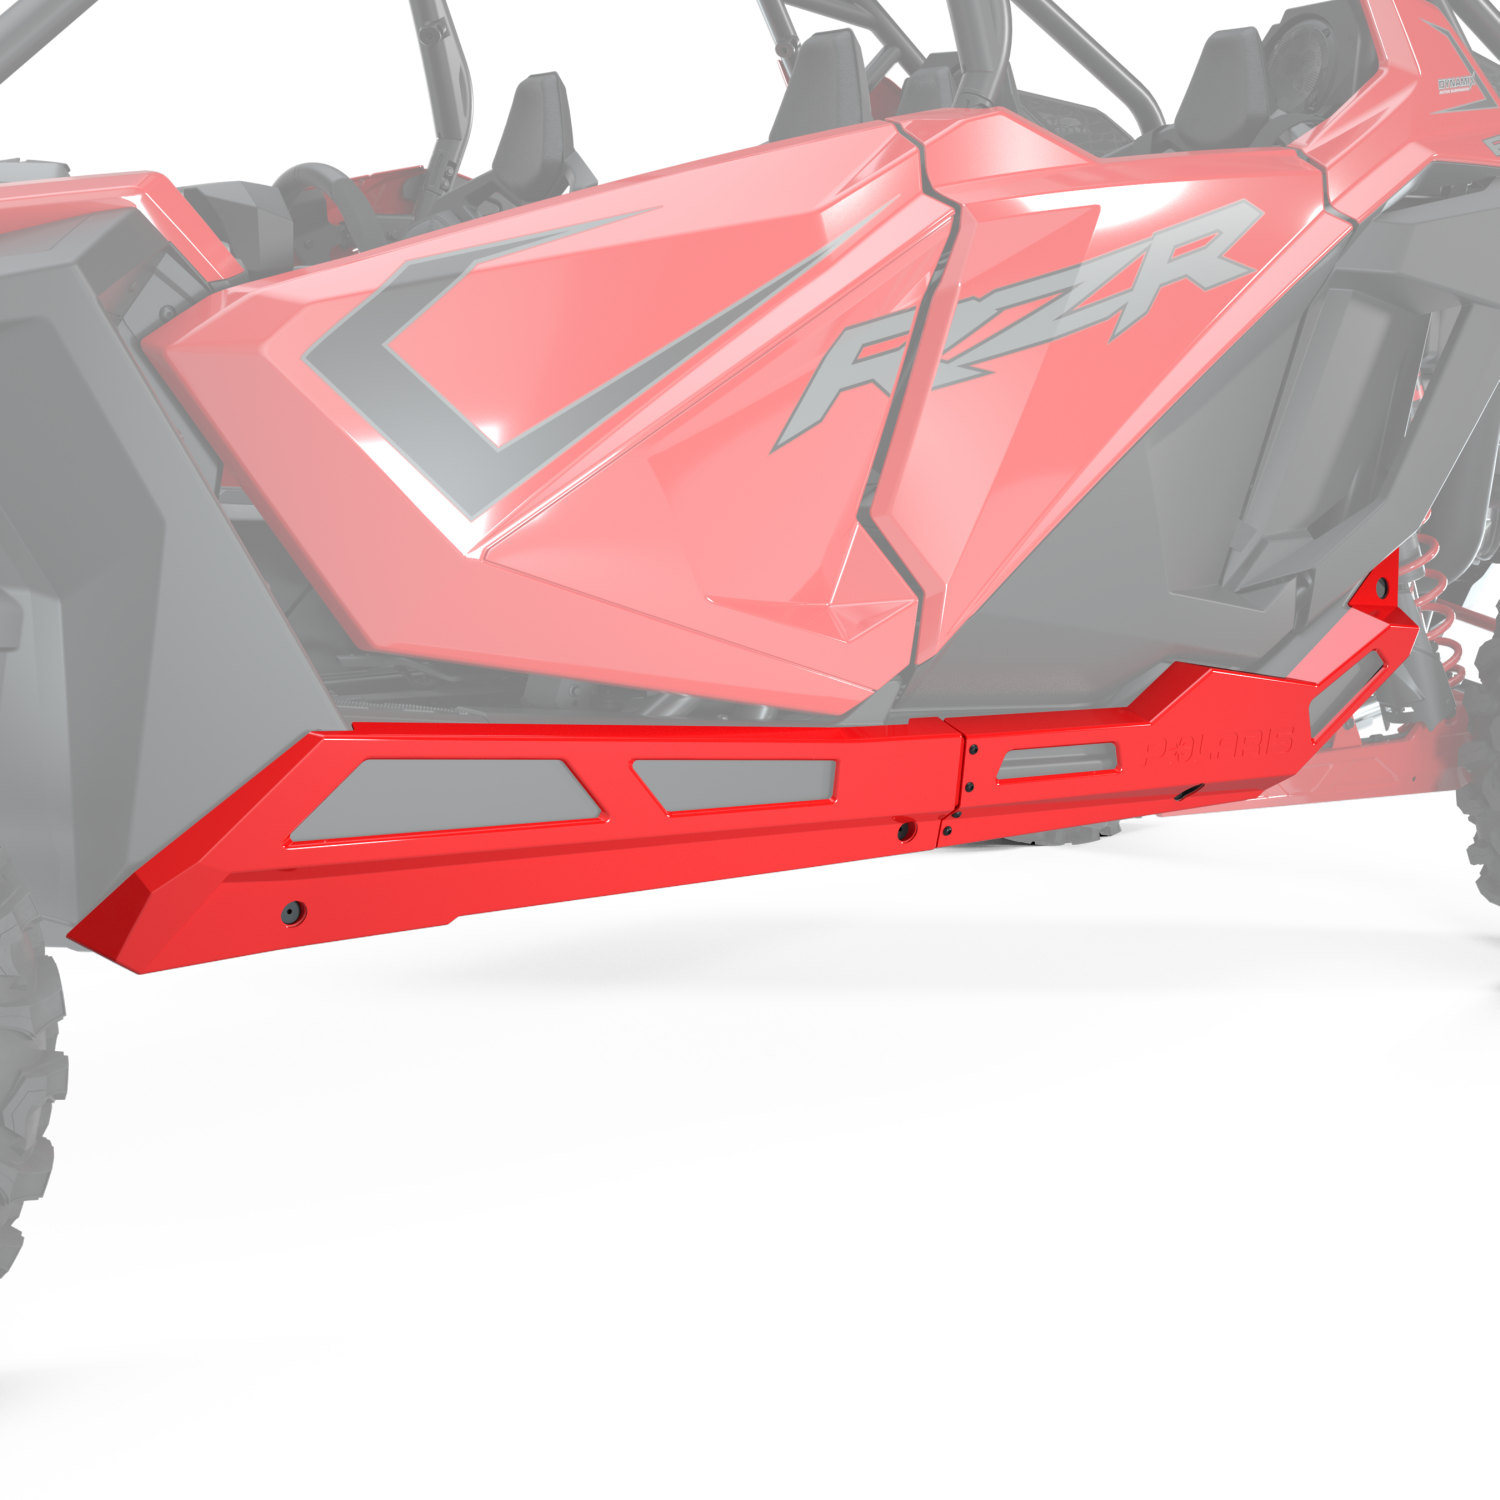 4-Seat Low Profile Rock Sliders, Indy Red